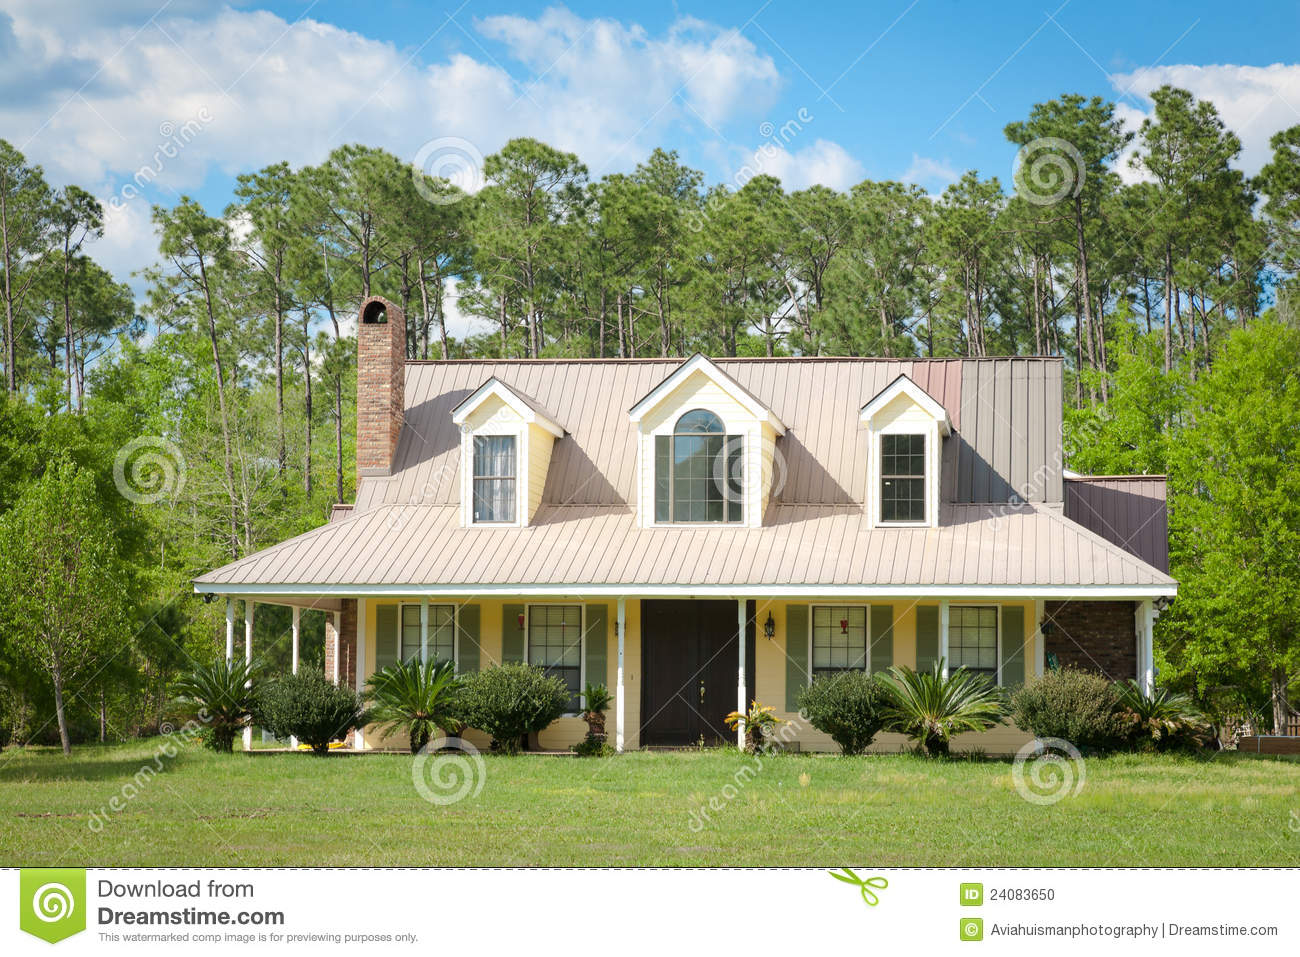 More Similar Stock Images Of Country Cottage Home And Garden